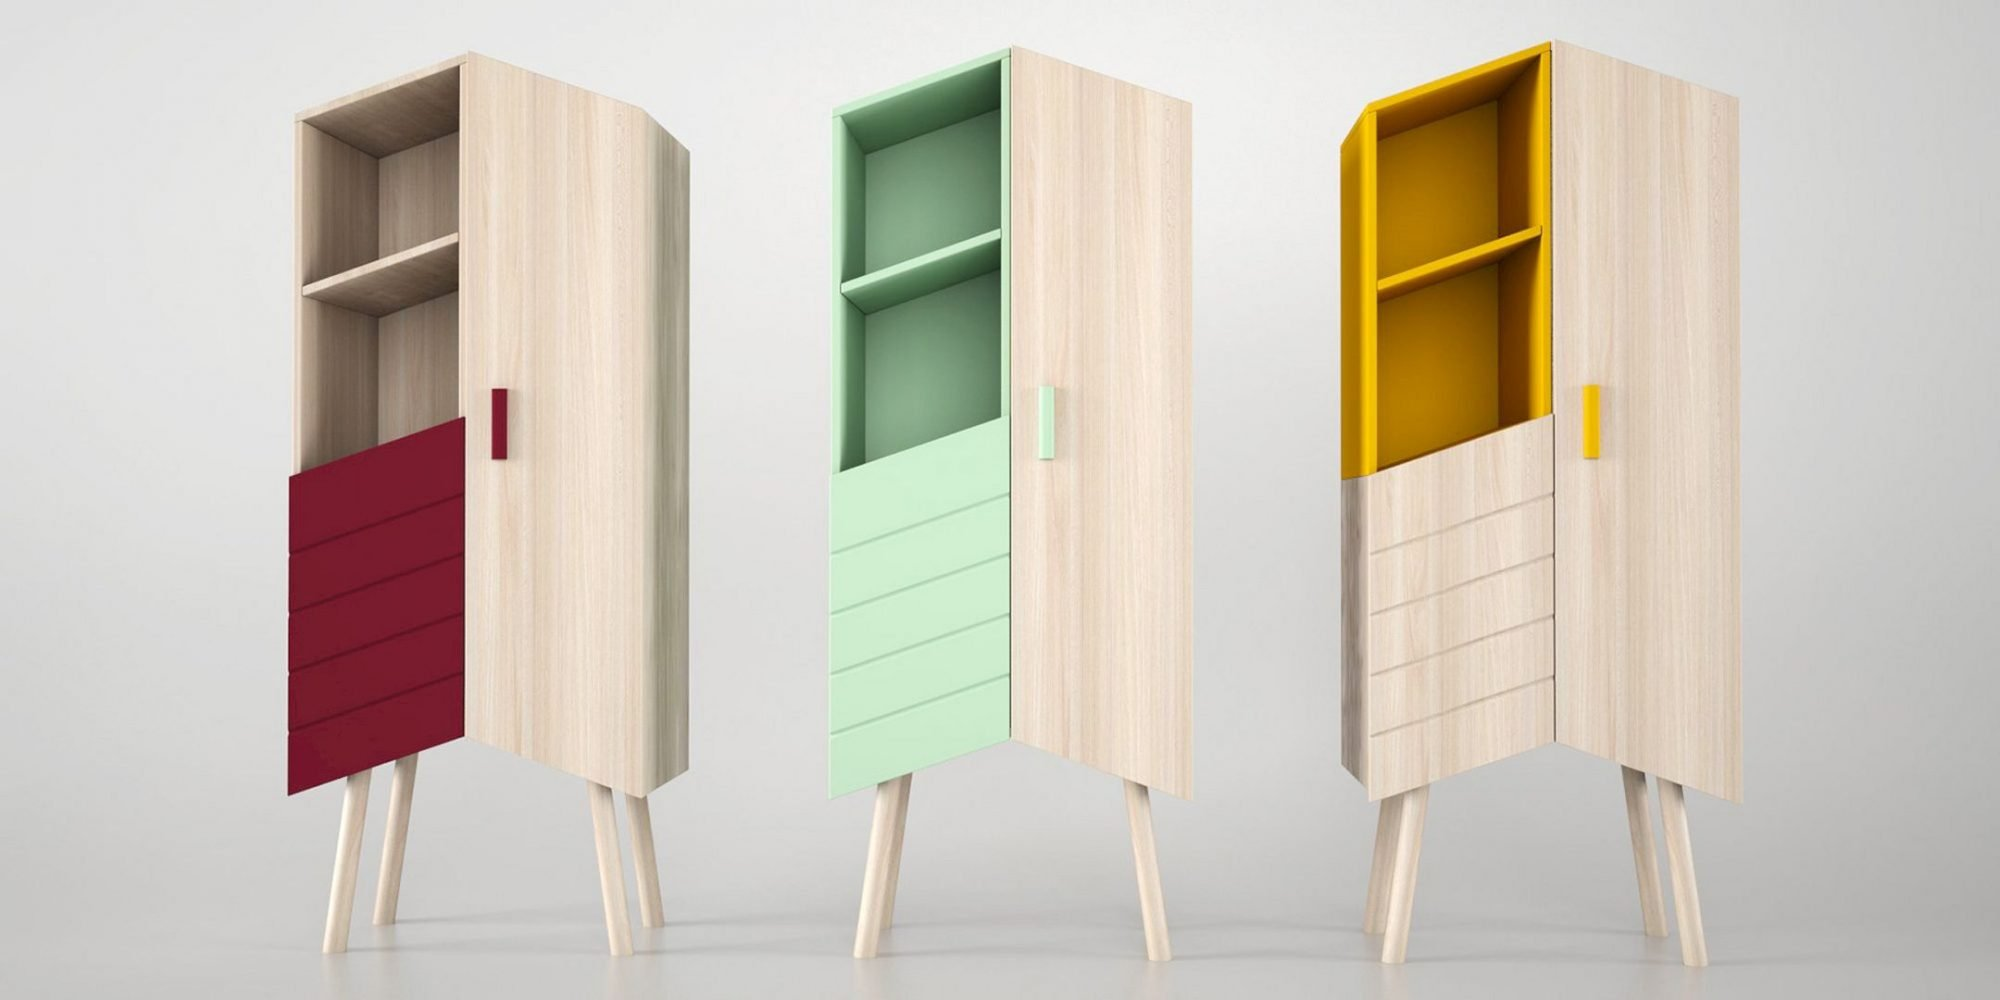 Tilbo Storage Unit: Contemporary Storage Unit for Dynamic Look in Your Home